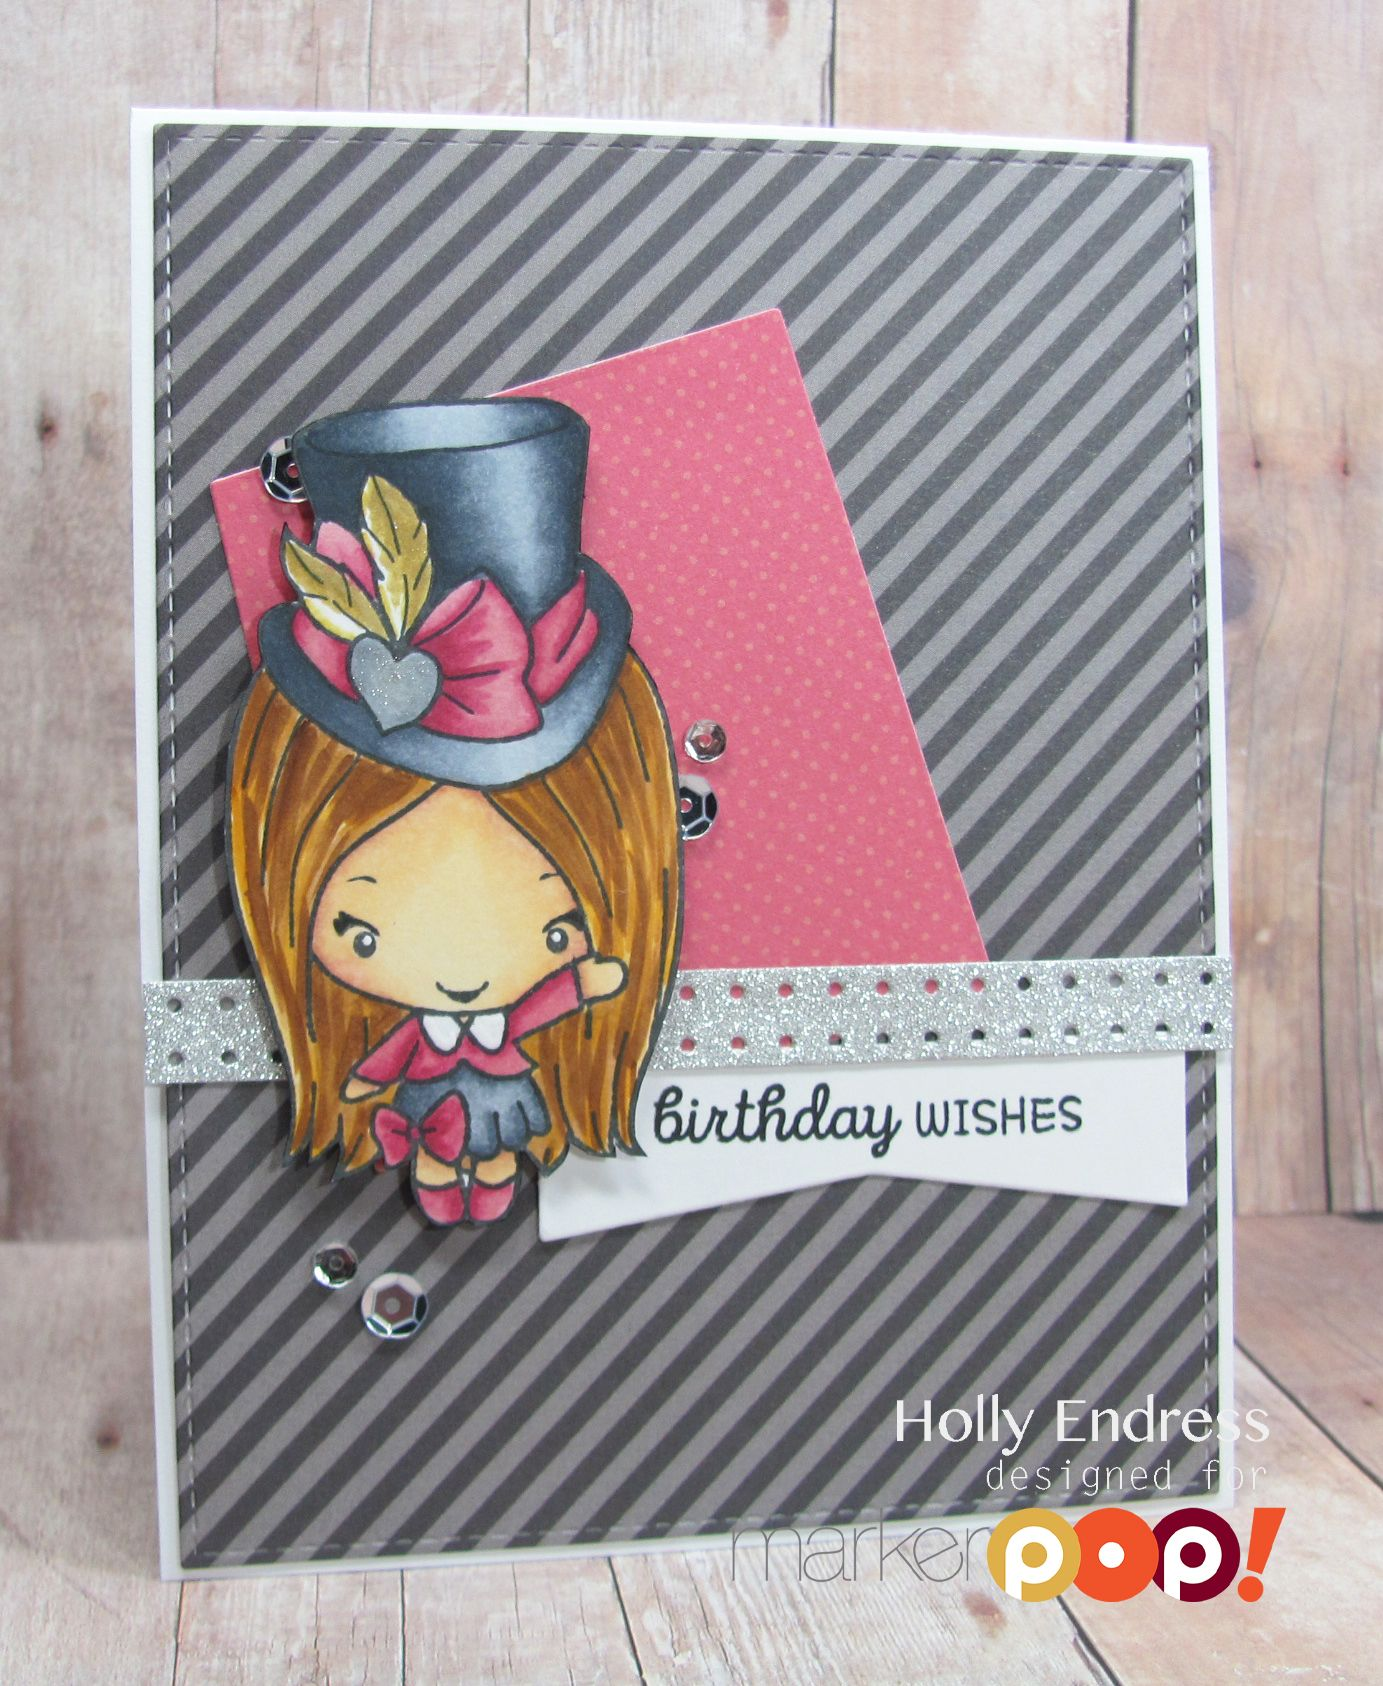 Hi everyone it's Holly here.. I hope you are all ready for the weekend! Today I'm sharing a cute card using the newest kit collection from The Greeting Farm called Hatters. This is a set of 8 Bean images and a few sentiments. I'm using the adorable Amy image along with some Copic Markers. I …